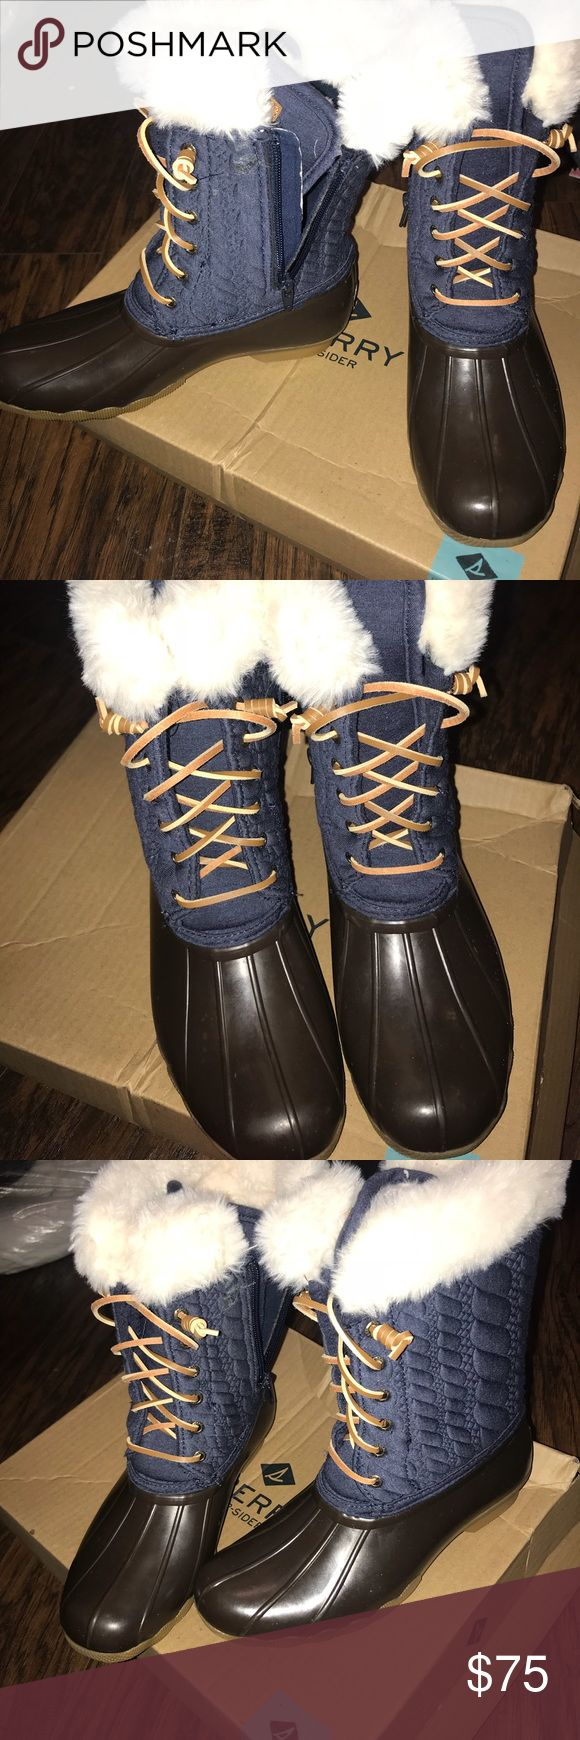 SPERRY SNOW BOOTS Brown & Denim sperry snow boots w/ beige fur Sperry Top-Sider Shoes Winter & Rain Boots